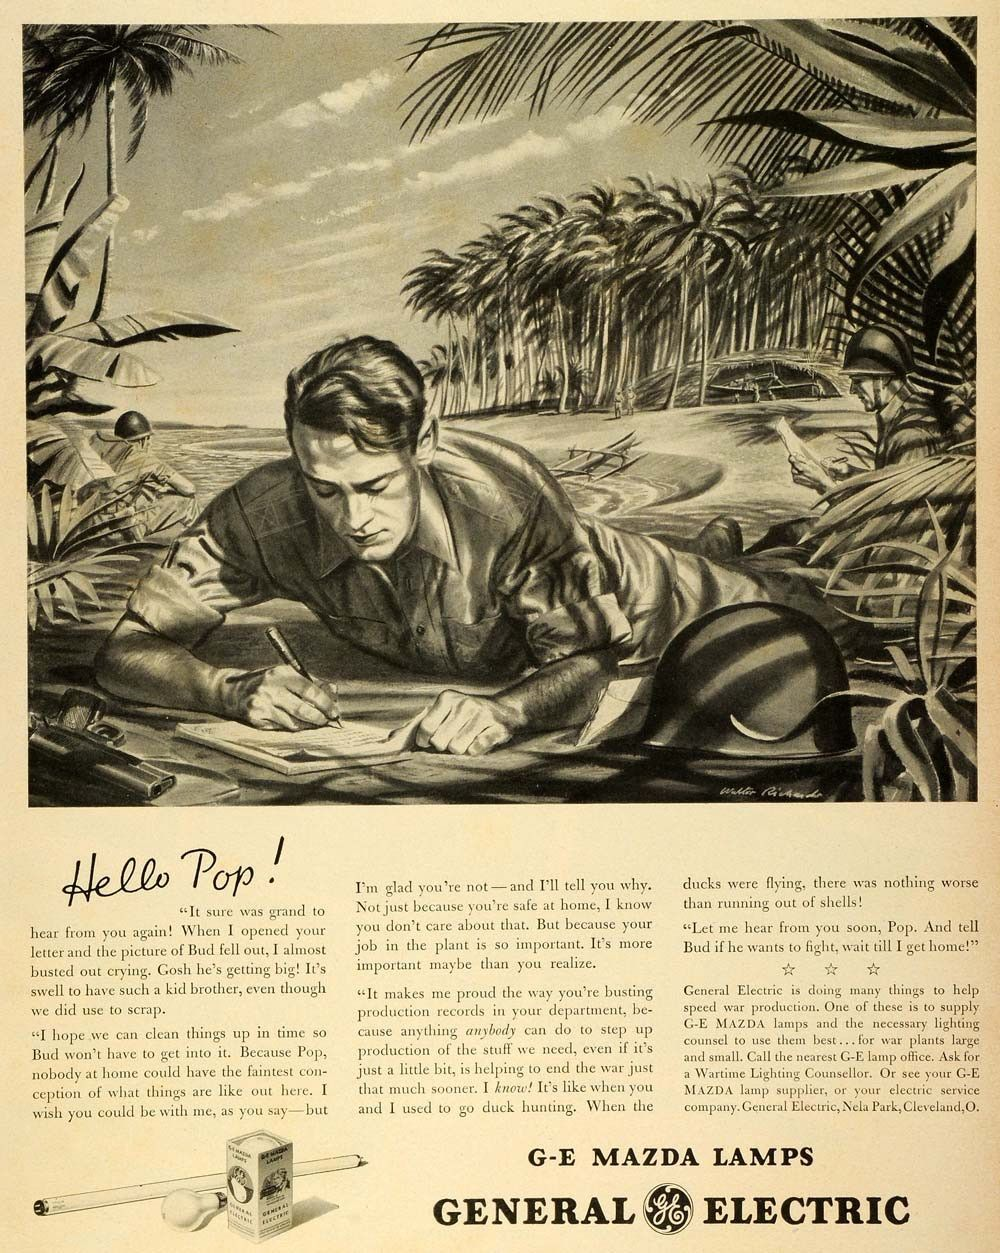 1943 Ad General Electric Mazda Lamps Light WWII Army Soldier Writing Letter LF4